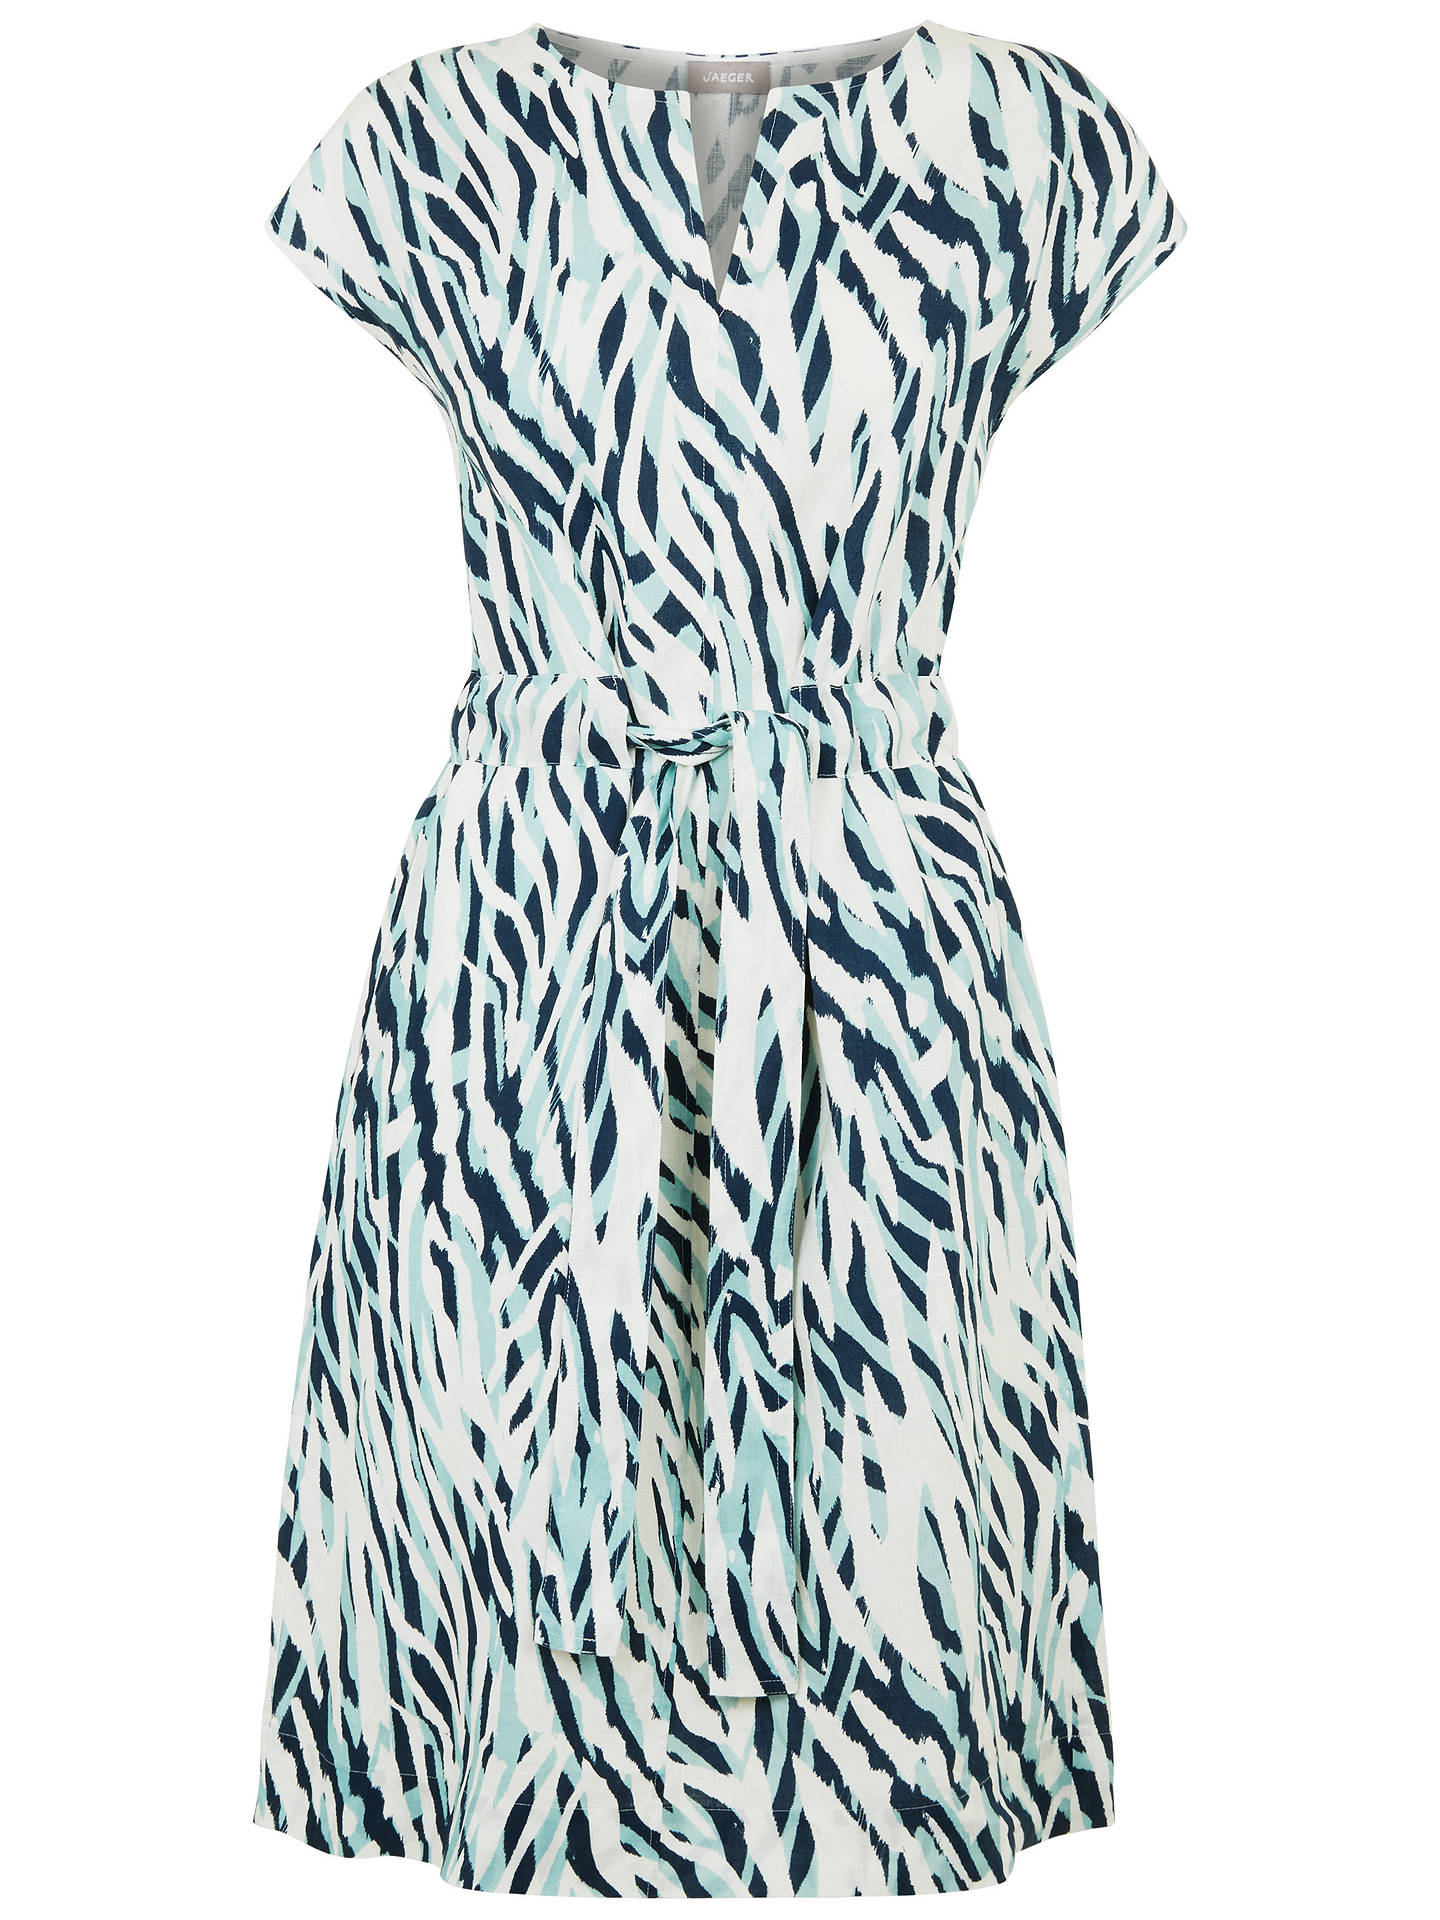 BuyJaeger Zebra Print Linen Tie Waist Dress, Aqua/Multi, 6 Online at johnlewis.com